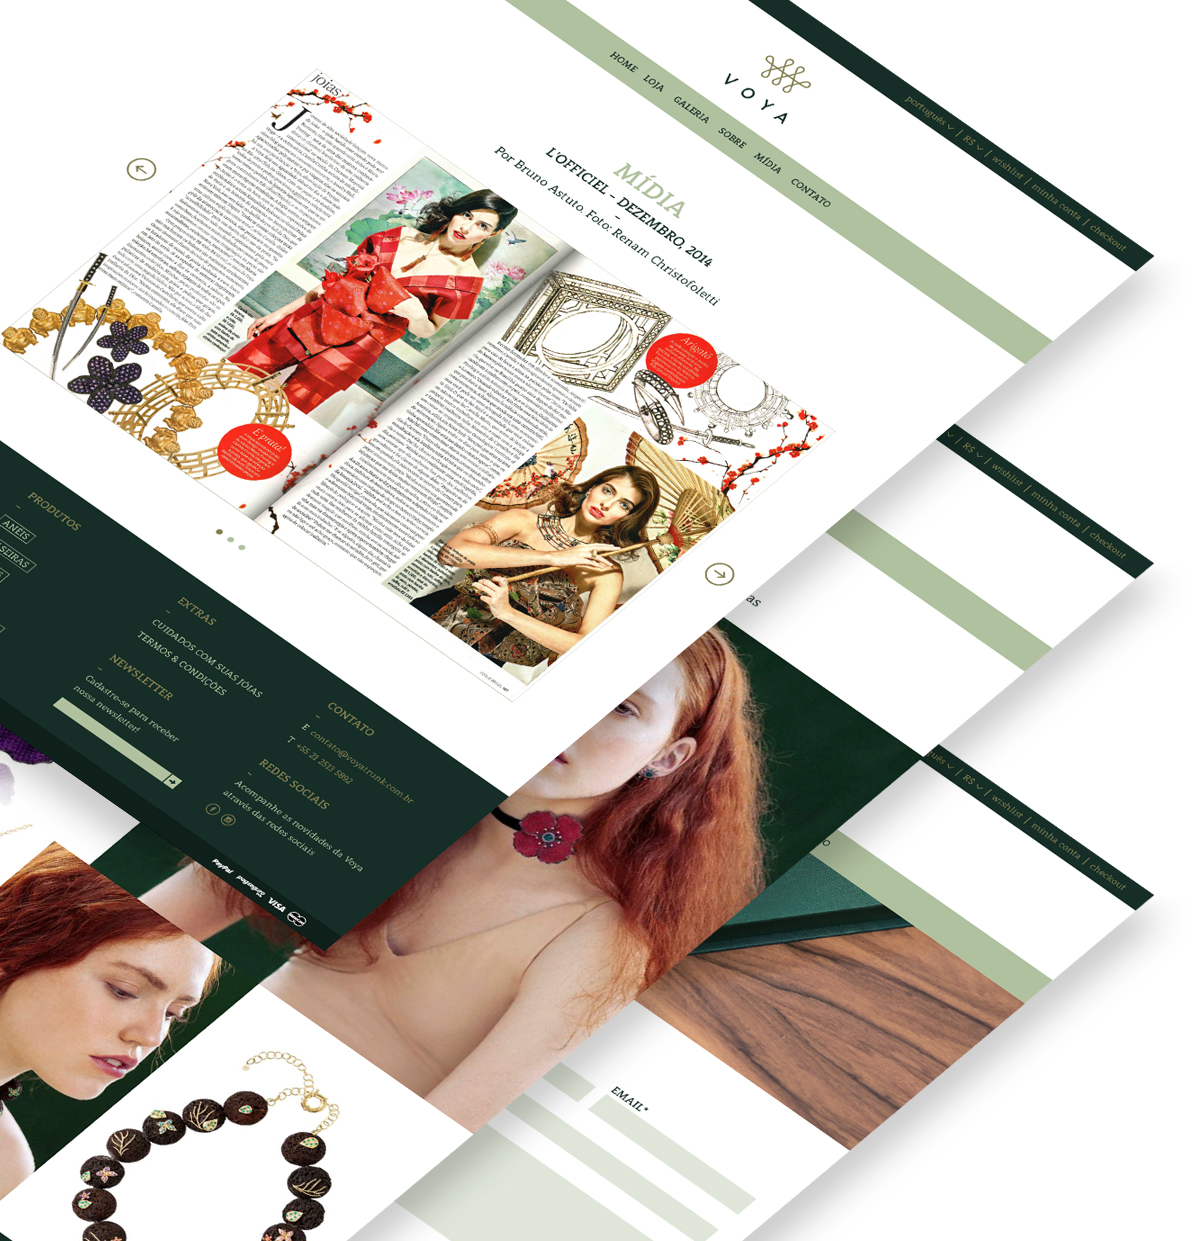 Photo montage showing three different website pages, layered on top of each other. The website has a white background, a dark green top menu and footer and some details in light green and dark yellow.